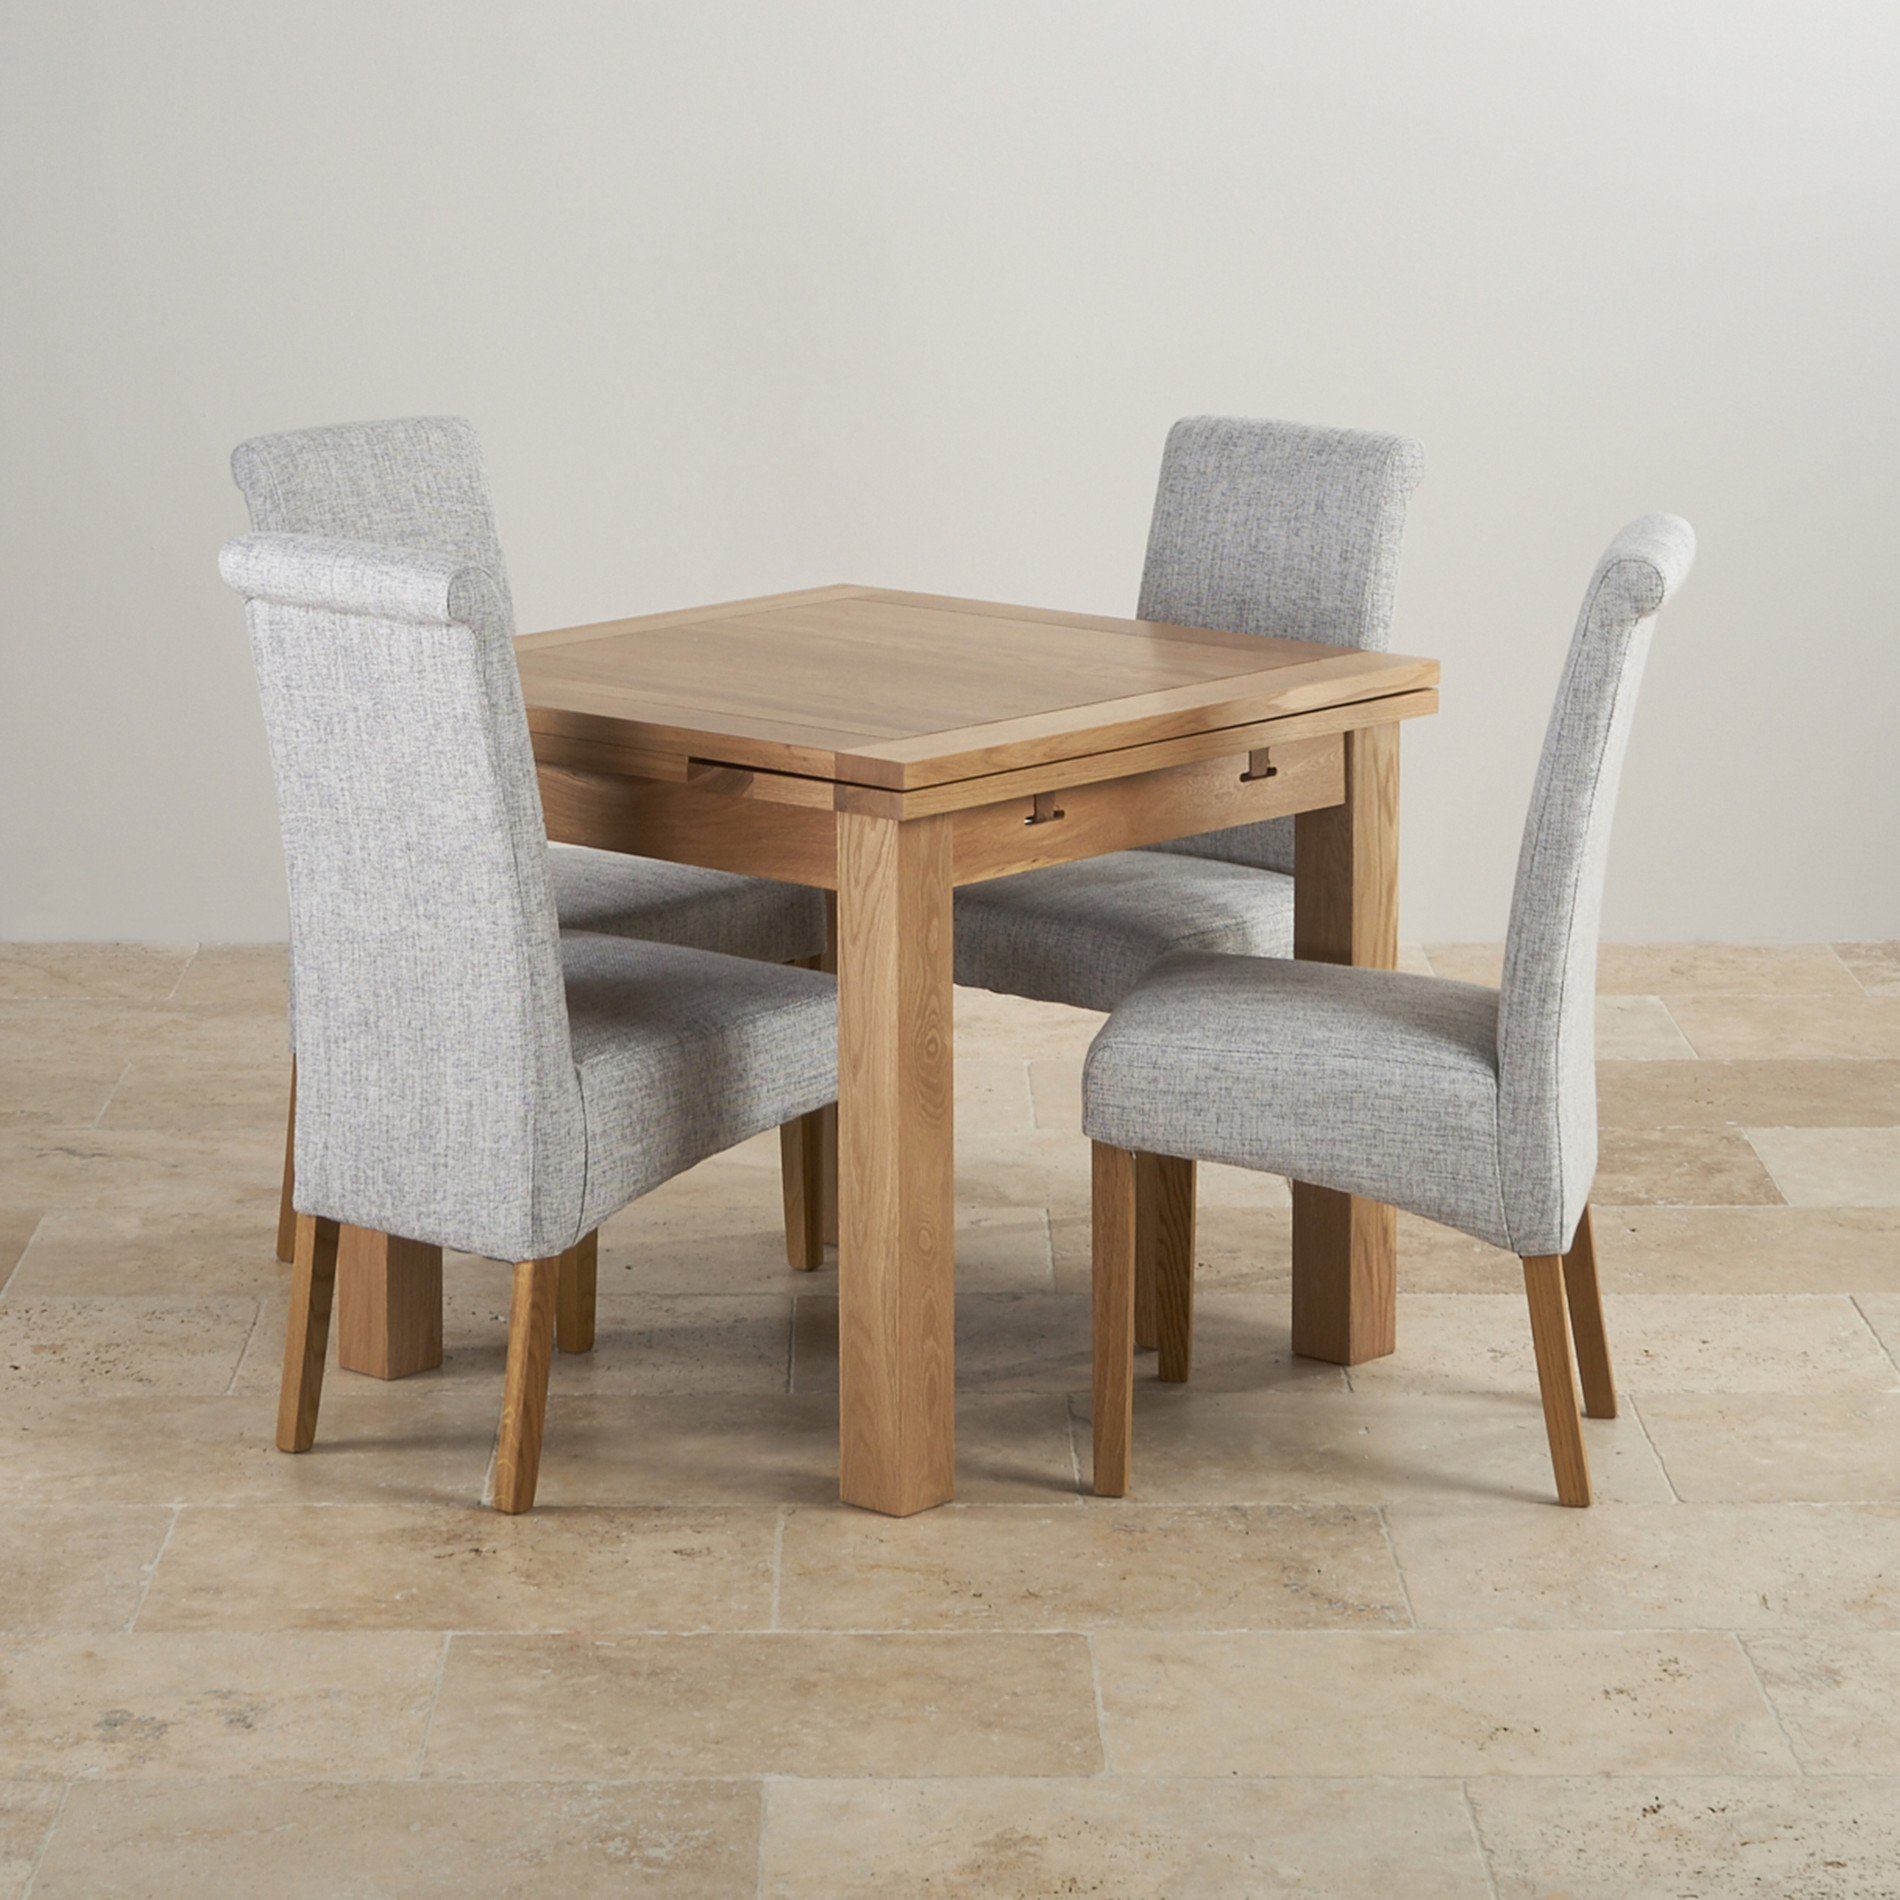 Oak Table And Chairs ~ Dorset oak ft dining table with grey fabric chairs